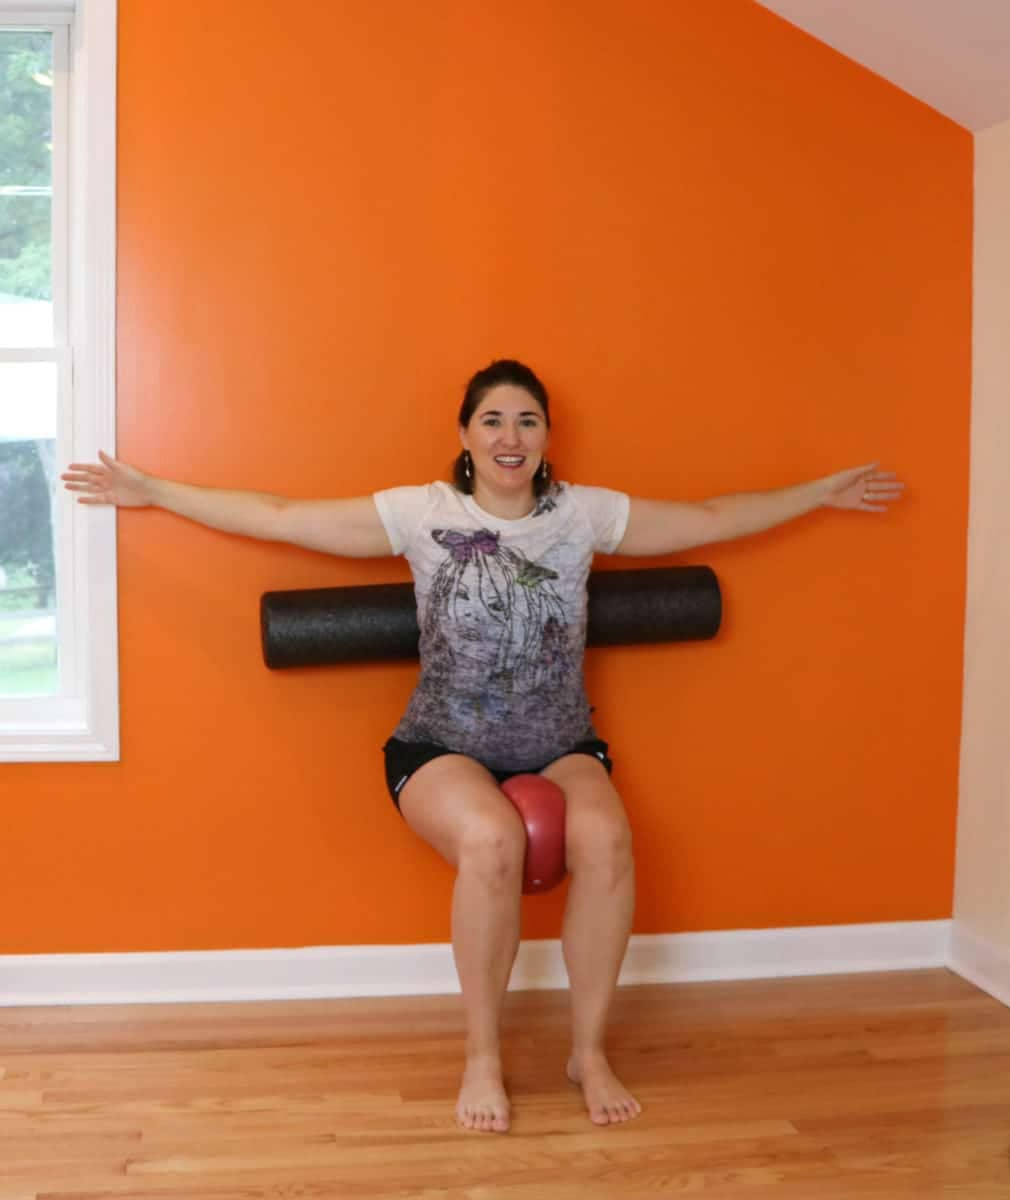 pilates squats with the foam roller